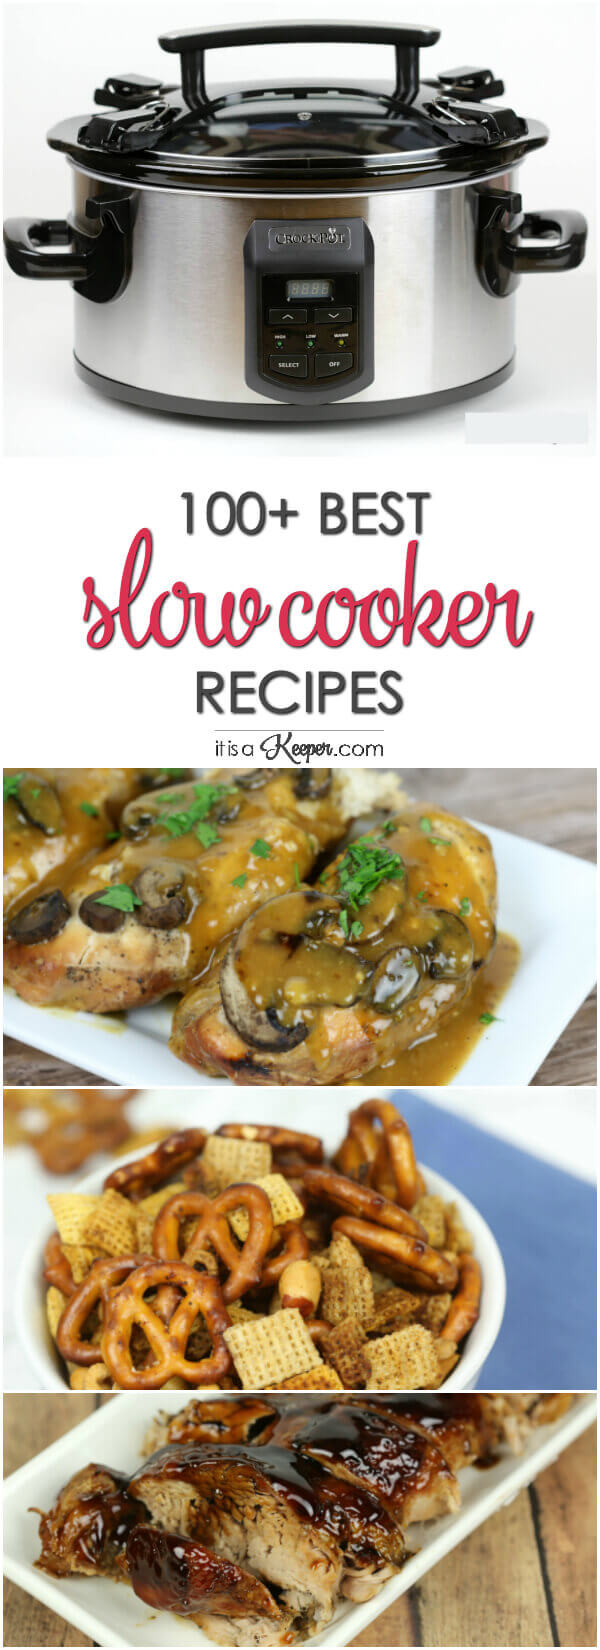 100+ Best Slow Cooker Recipes of all time - including crock pot recipes for chicken, pork, beef, desserts, side dishes and more